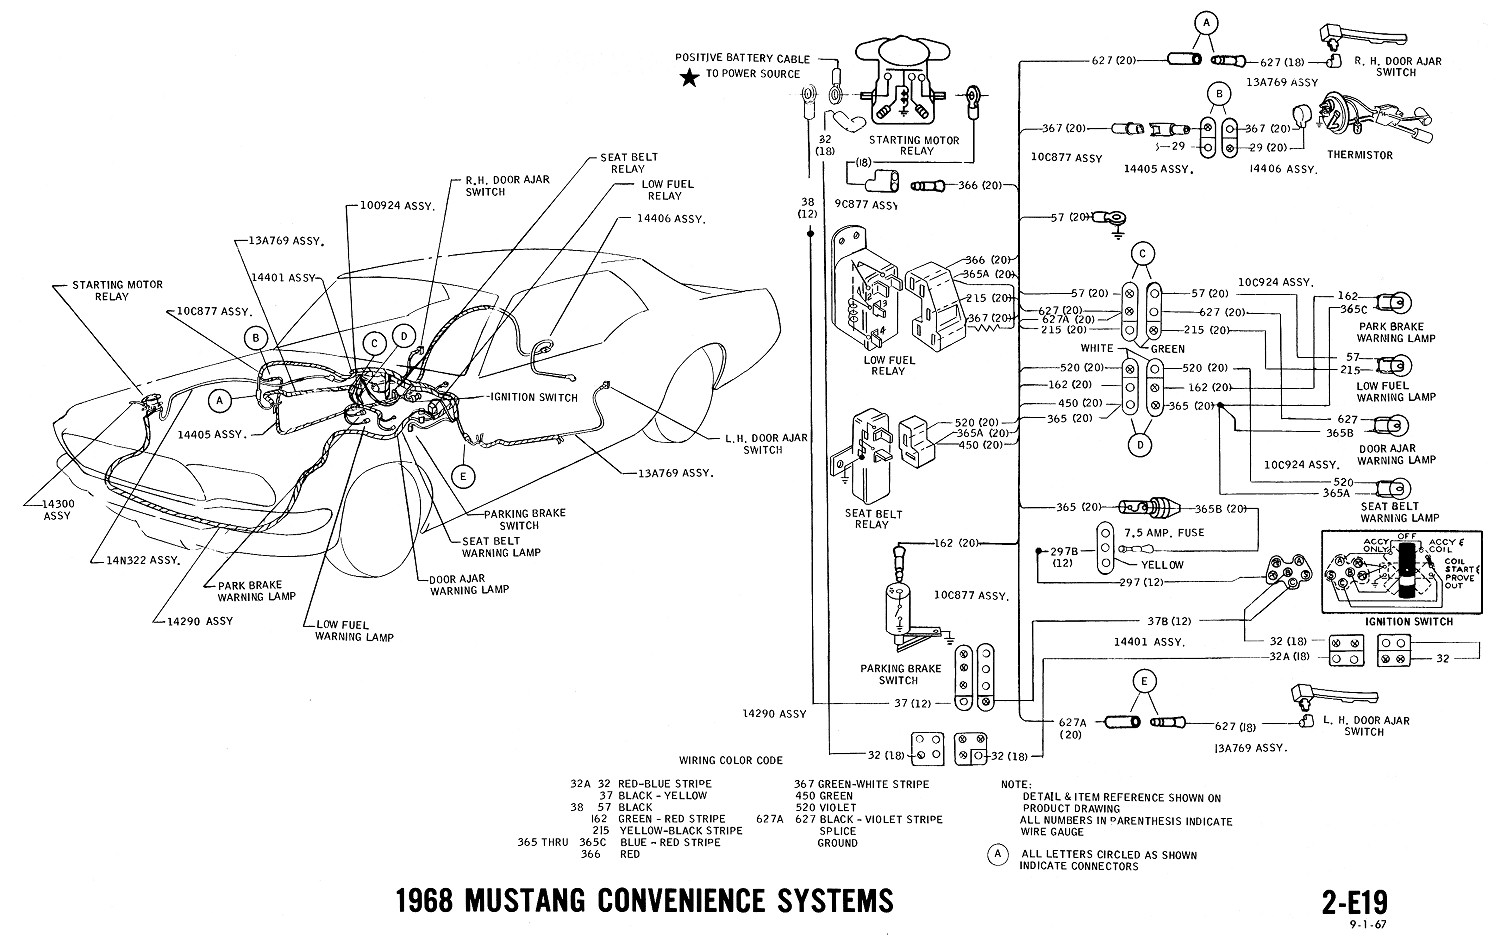 E19 1968 mustang wiring diagrams evolving software 1969 Ford Mustang Wiring Diagram at bayanpartner.co